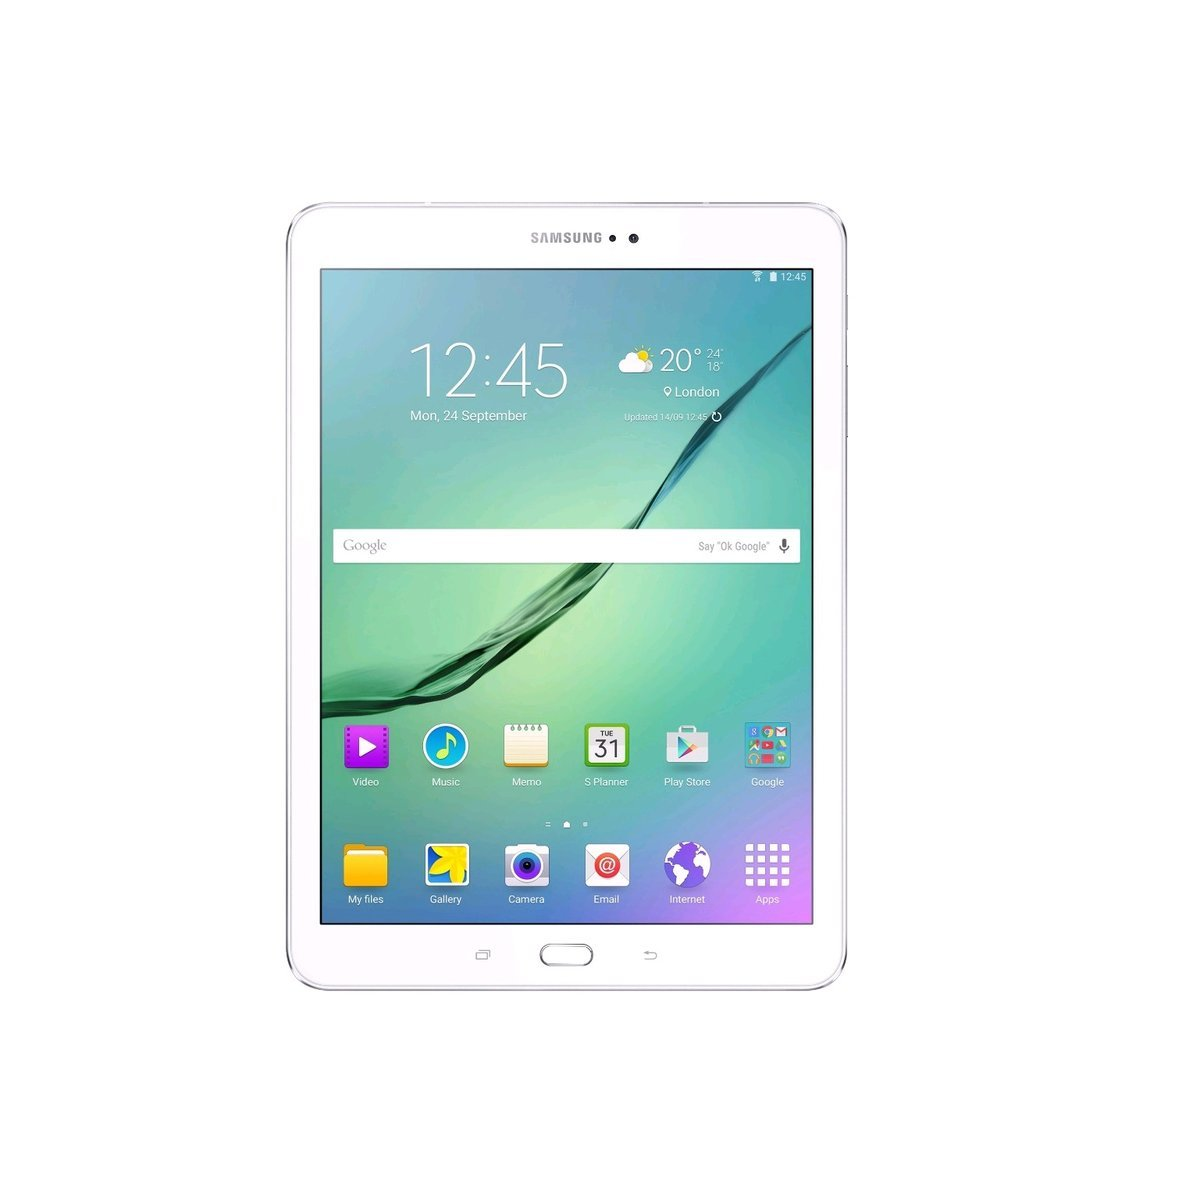 Samsung Galaxy Tab S2 8.0 32GB Wifi Tablet